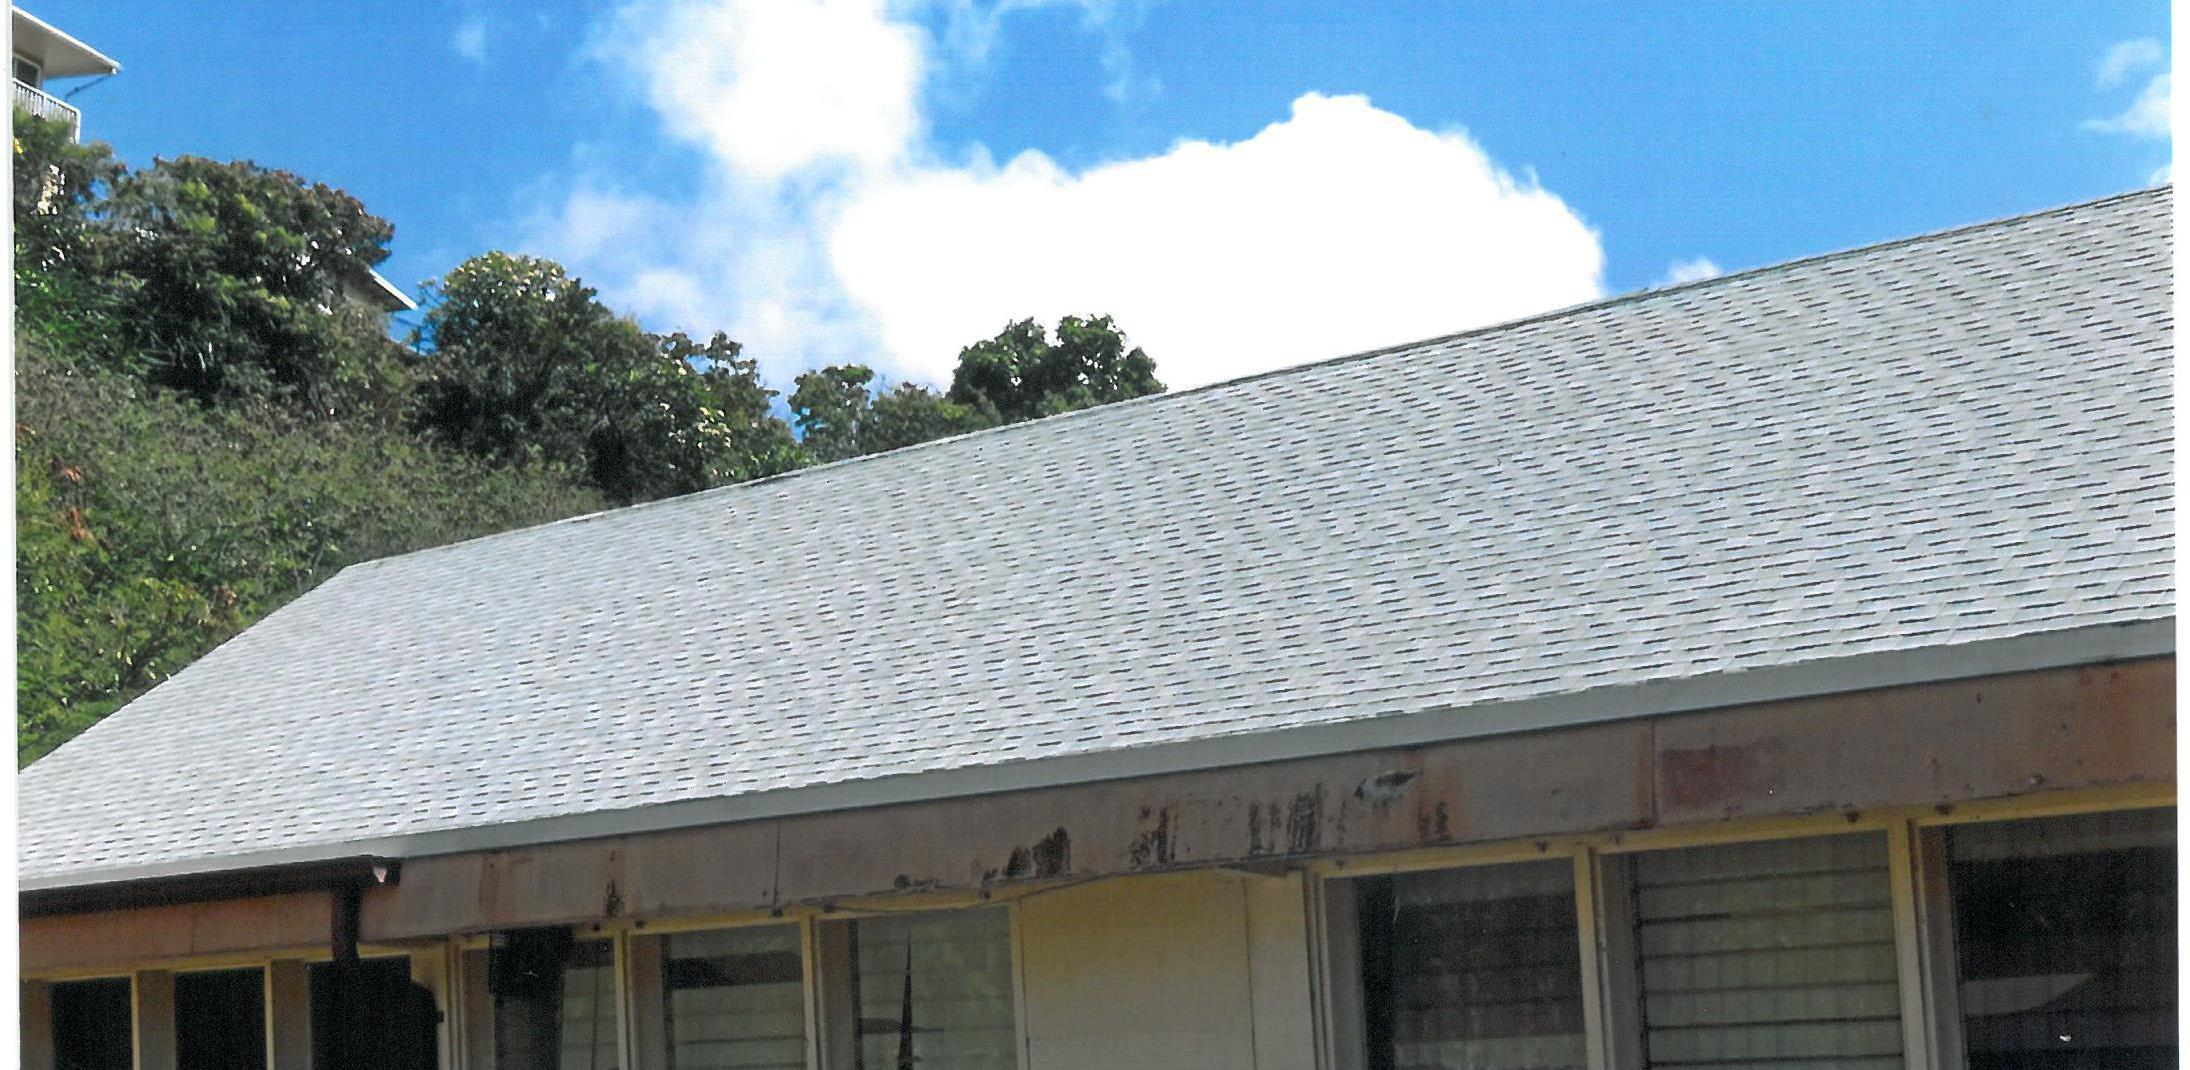 Professional roof contractors working on a roof in Honolulu, HI